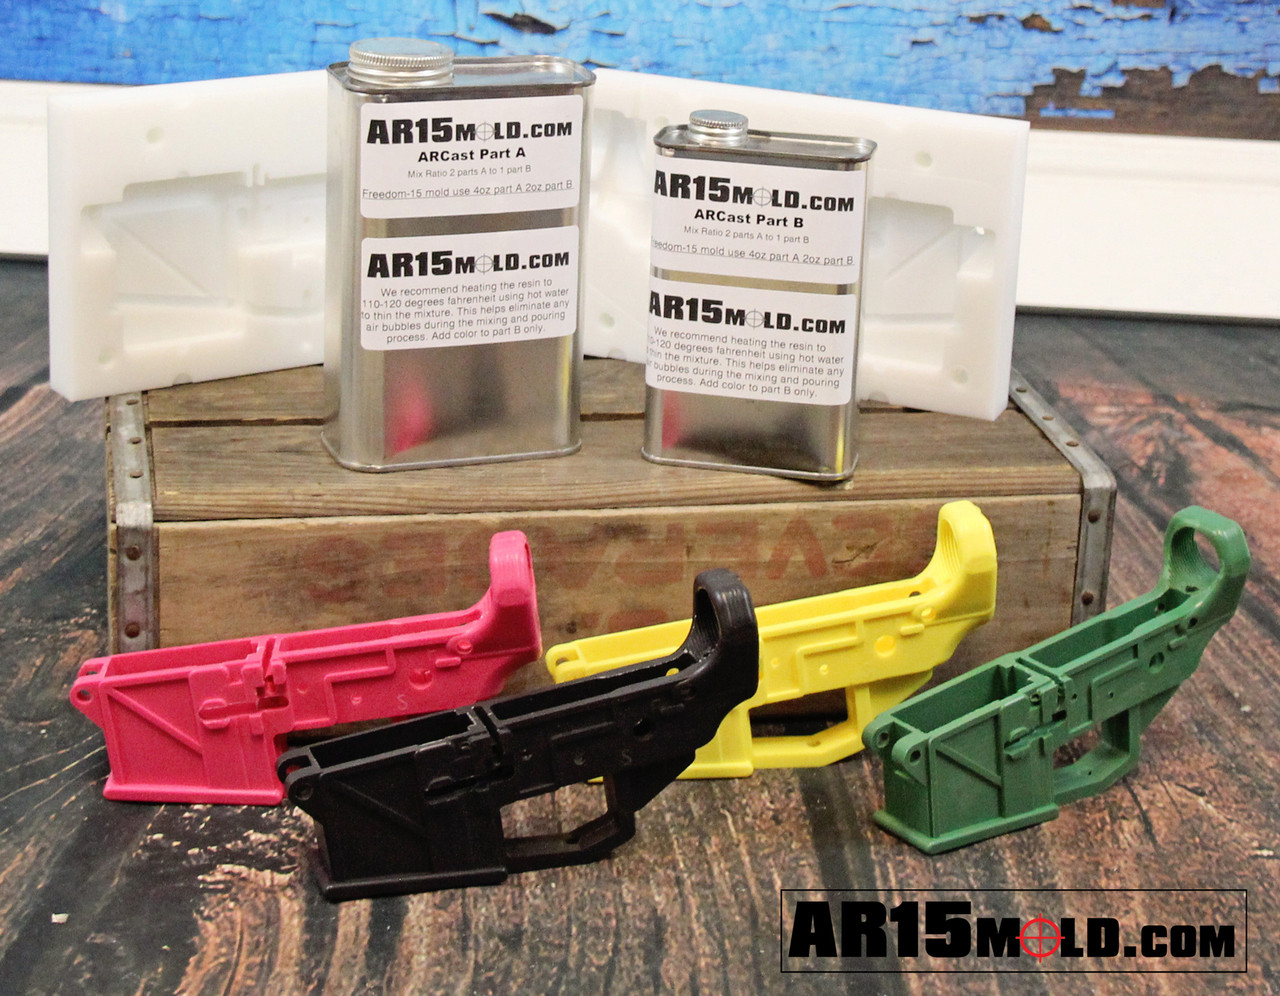 freedom 15 ar15 100 percent lower receiver mold kit no machining required  [ 1280 x 996 Pixel ]